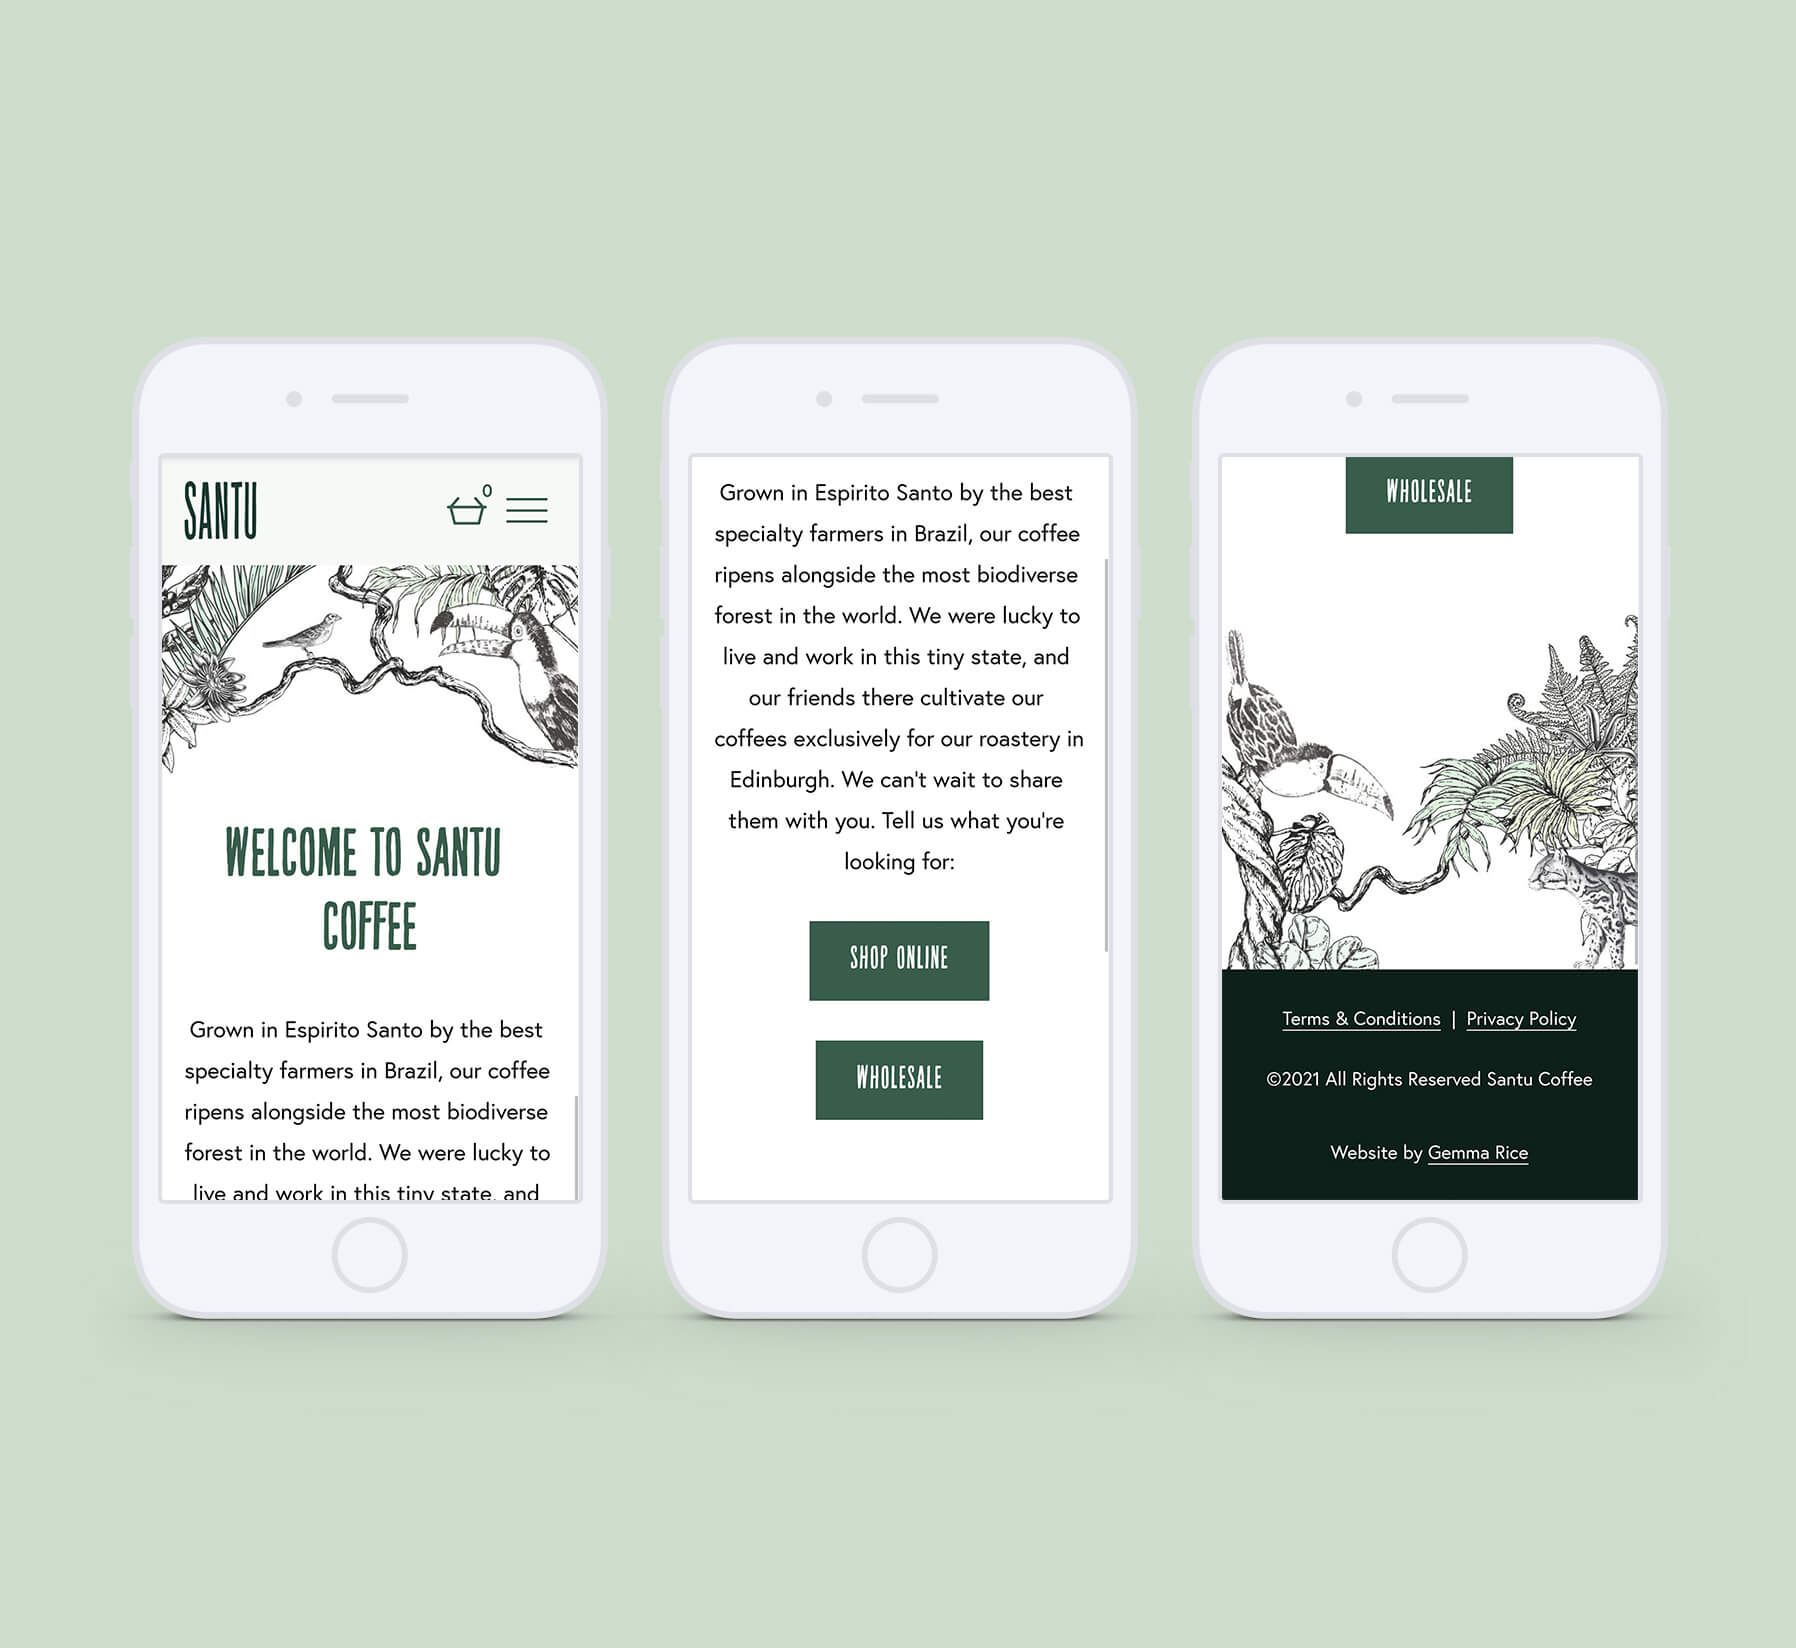 Mobile website designs for coffee company with rainforest illustration and animals